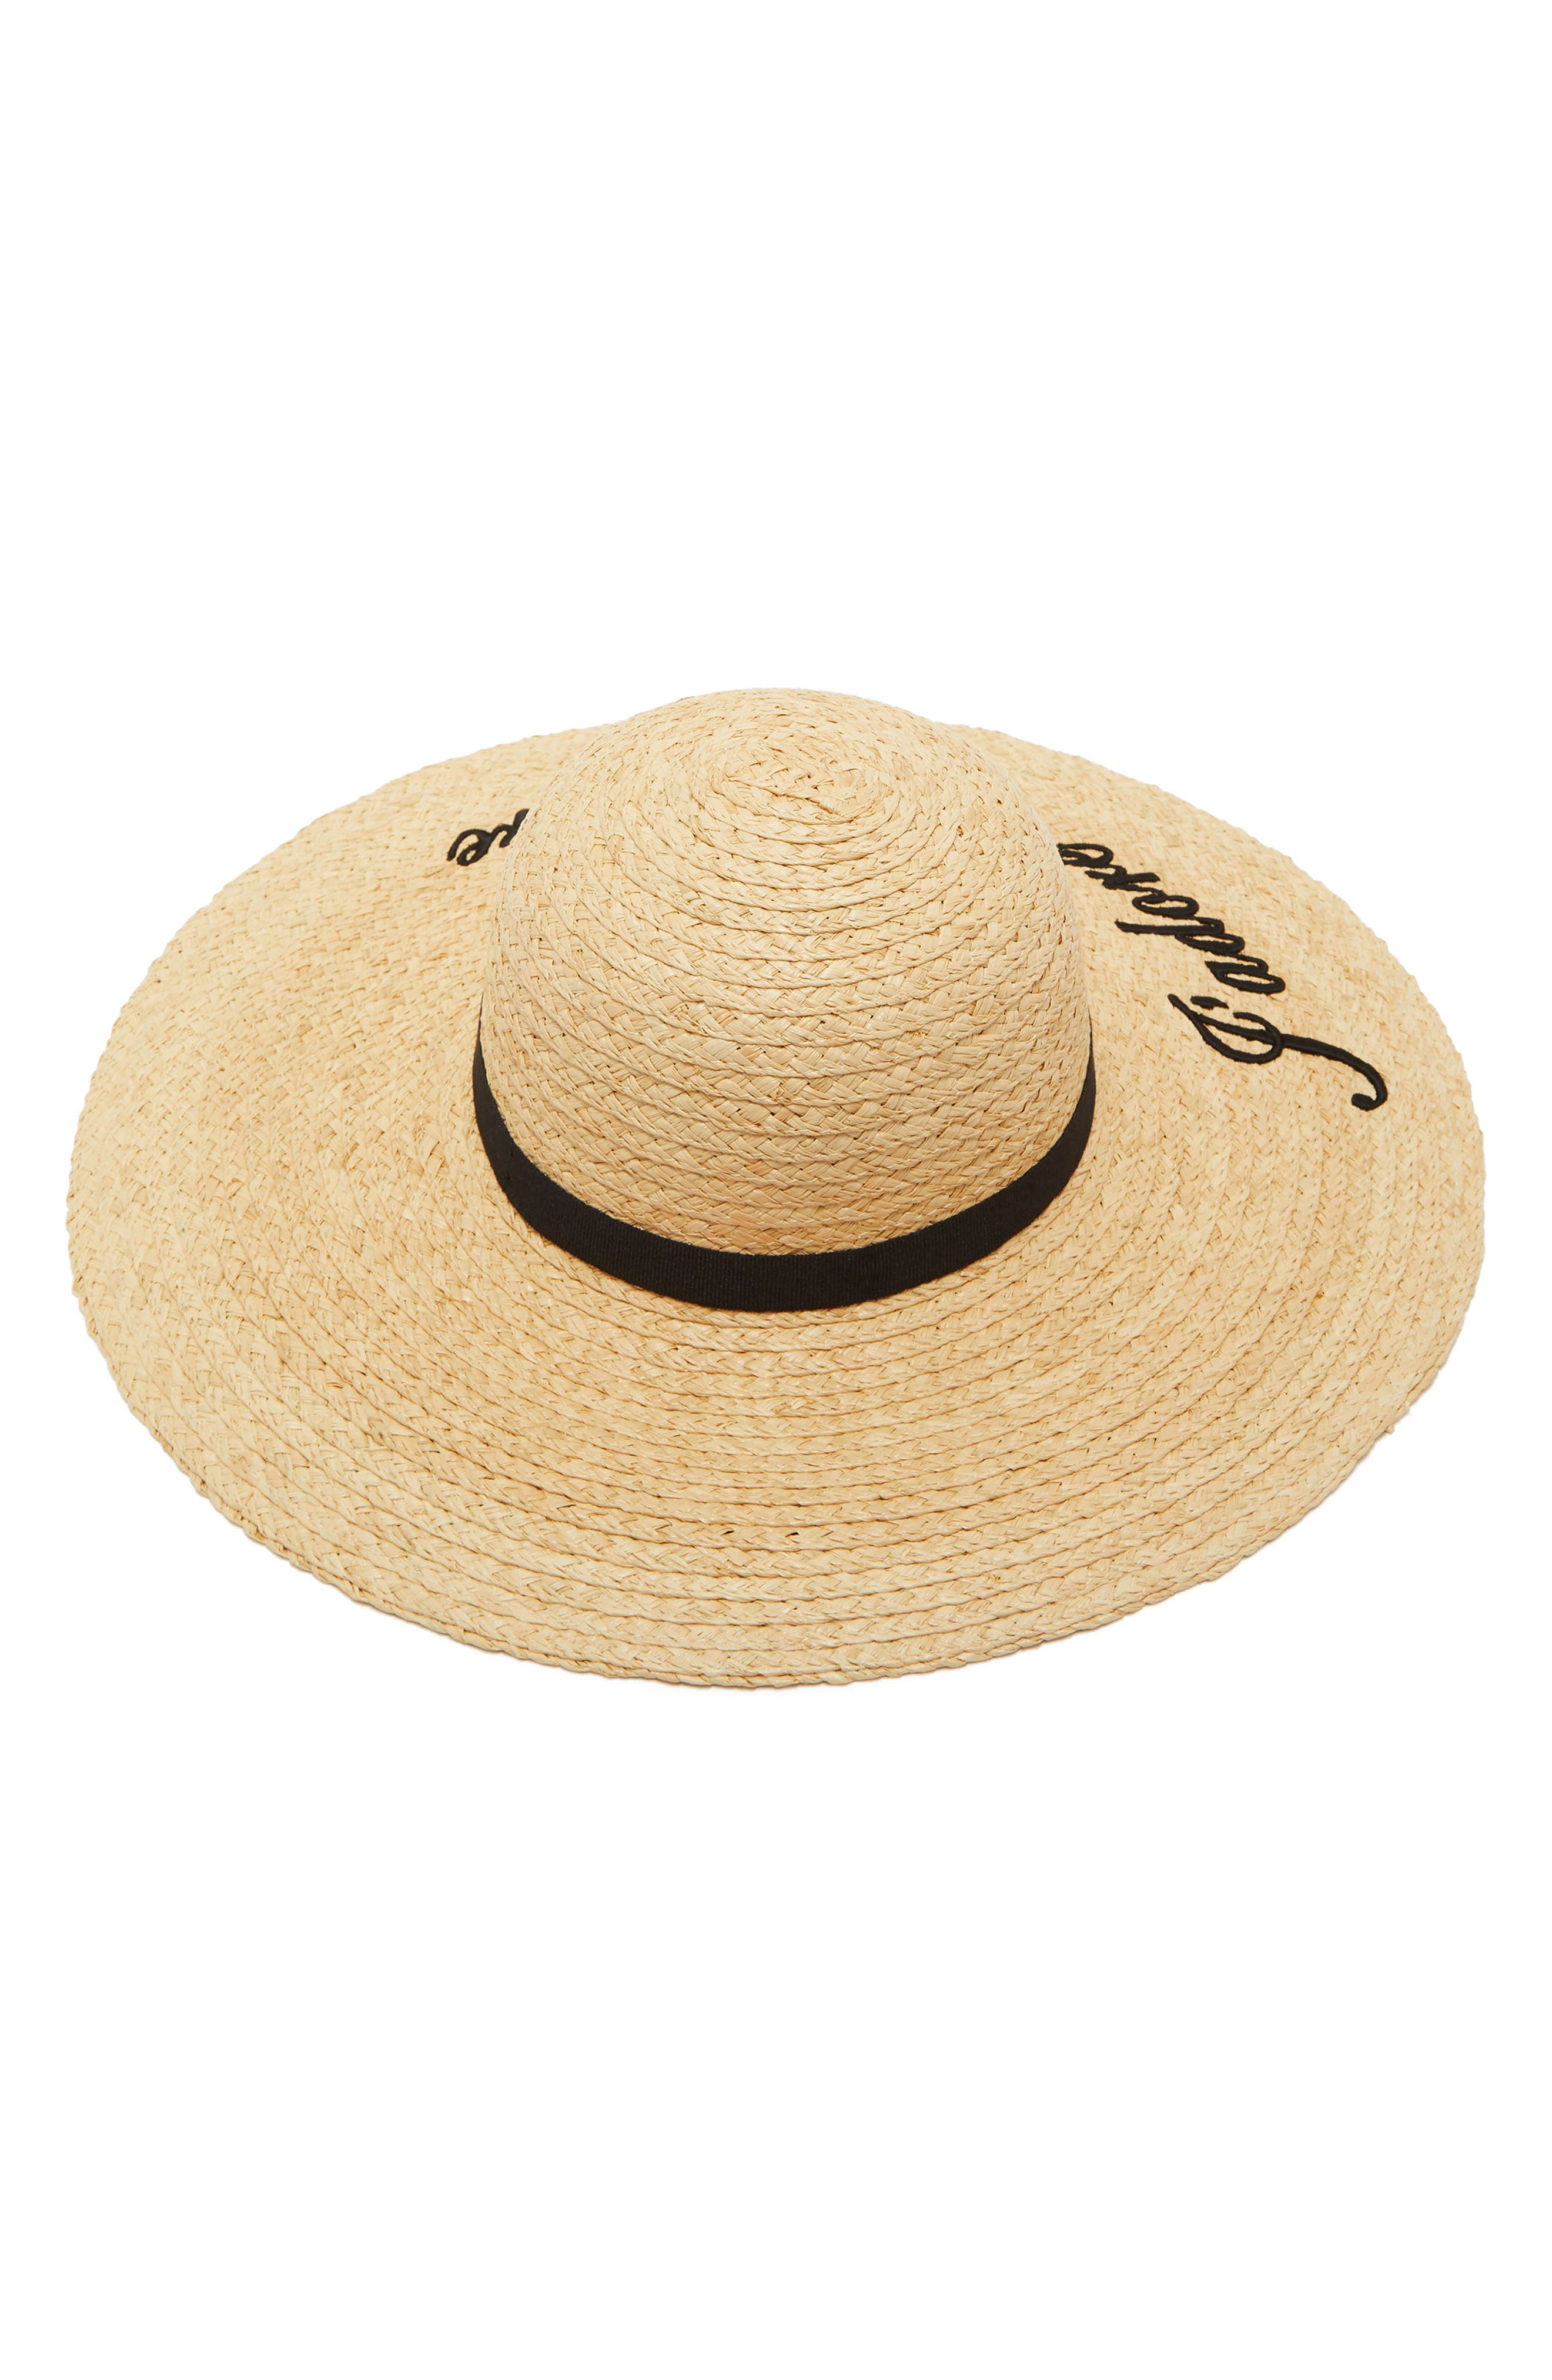 Script Embroidered Floppy Hat,                             Alternate thumbnail 2, color,                             Straw